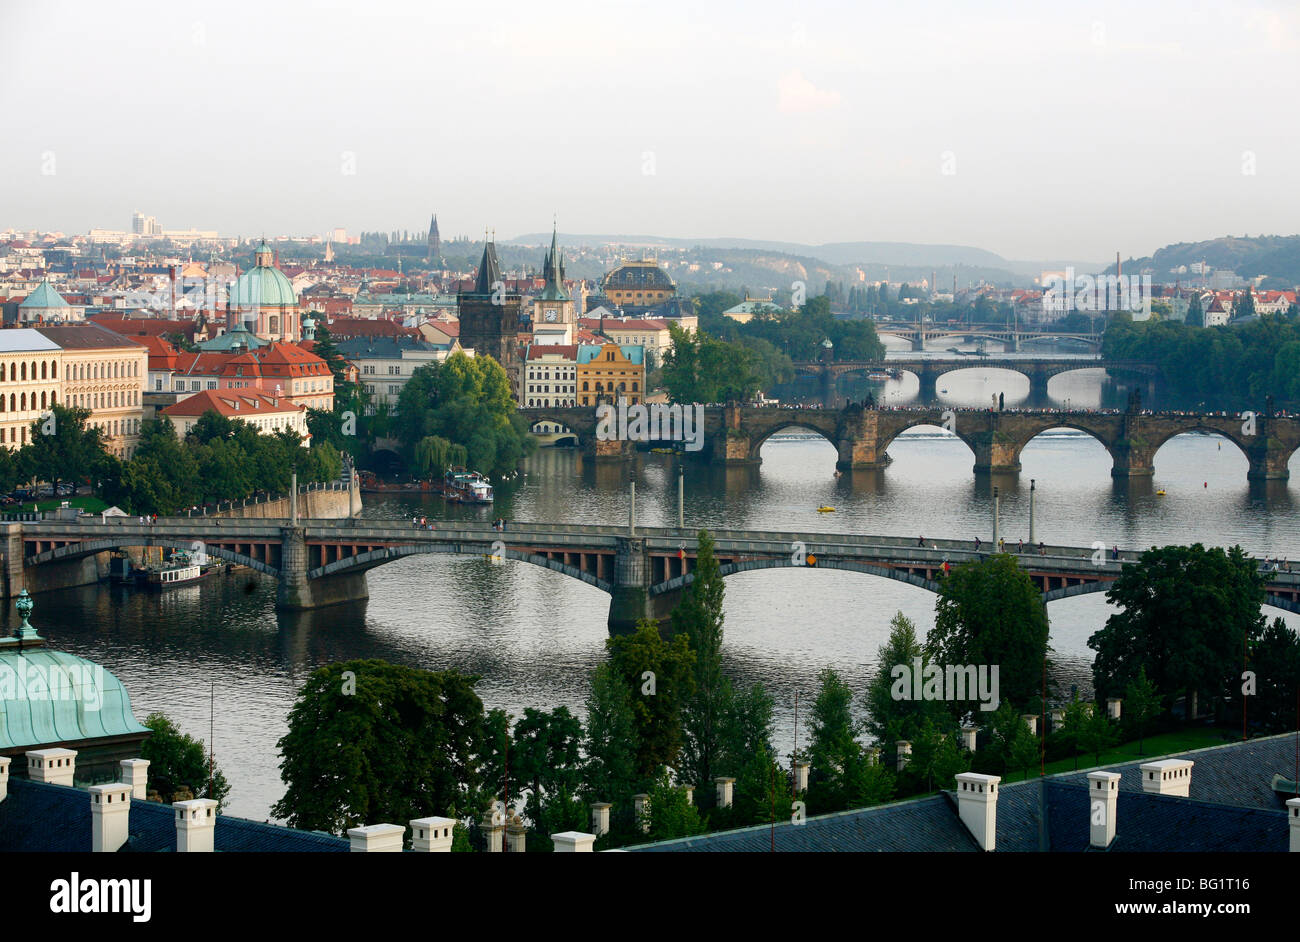 View of the River Vltava and bridges from Letna Hill, Prague, Czech Republic, Europe Stock Photo